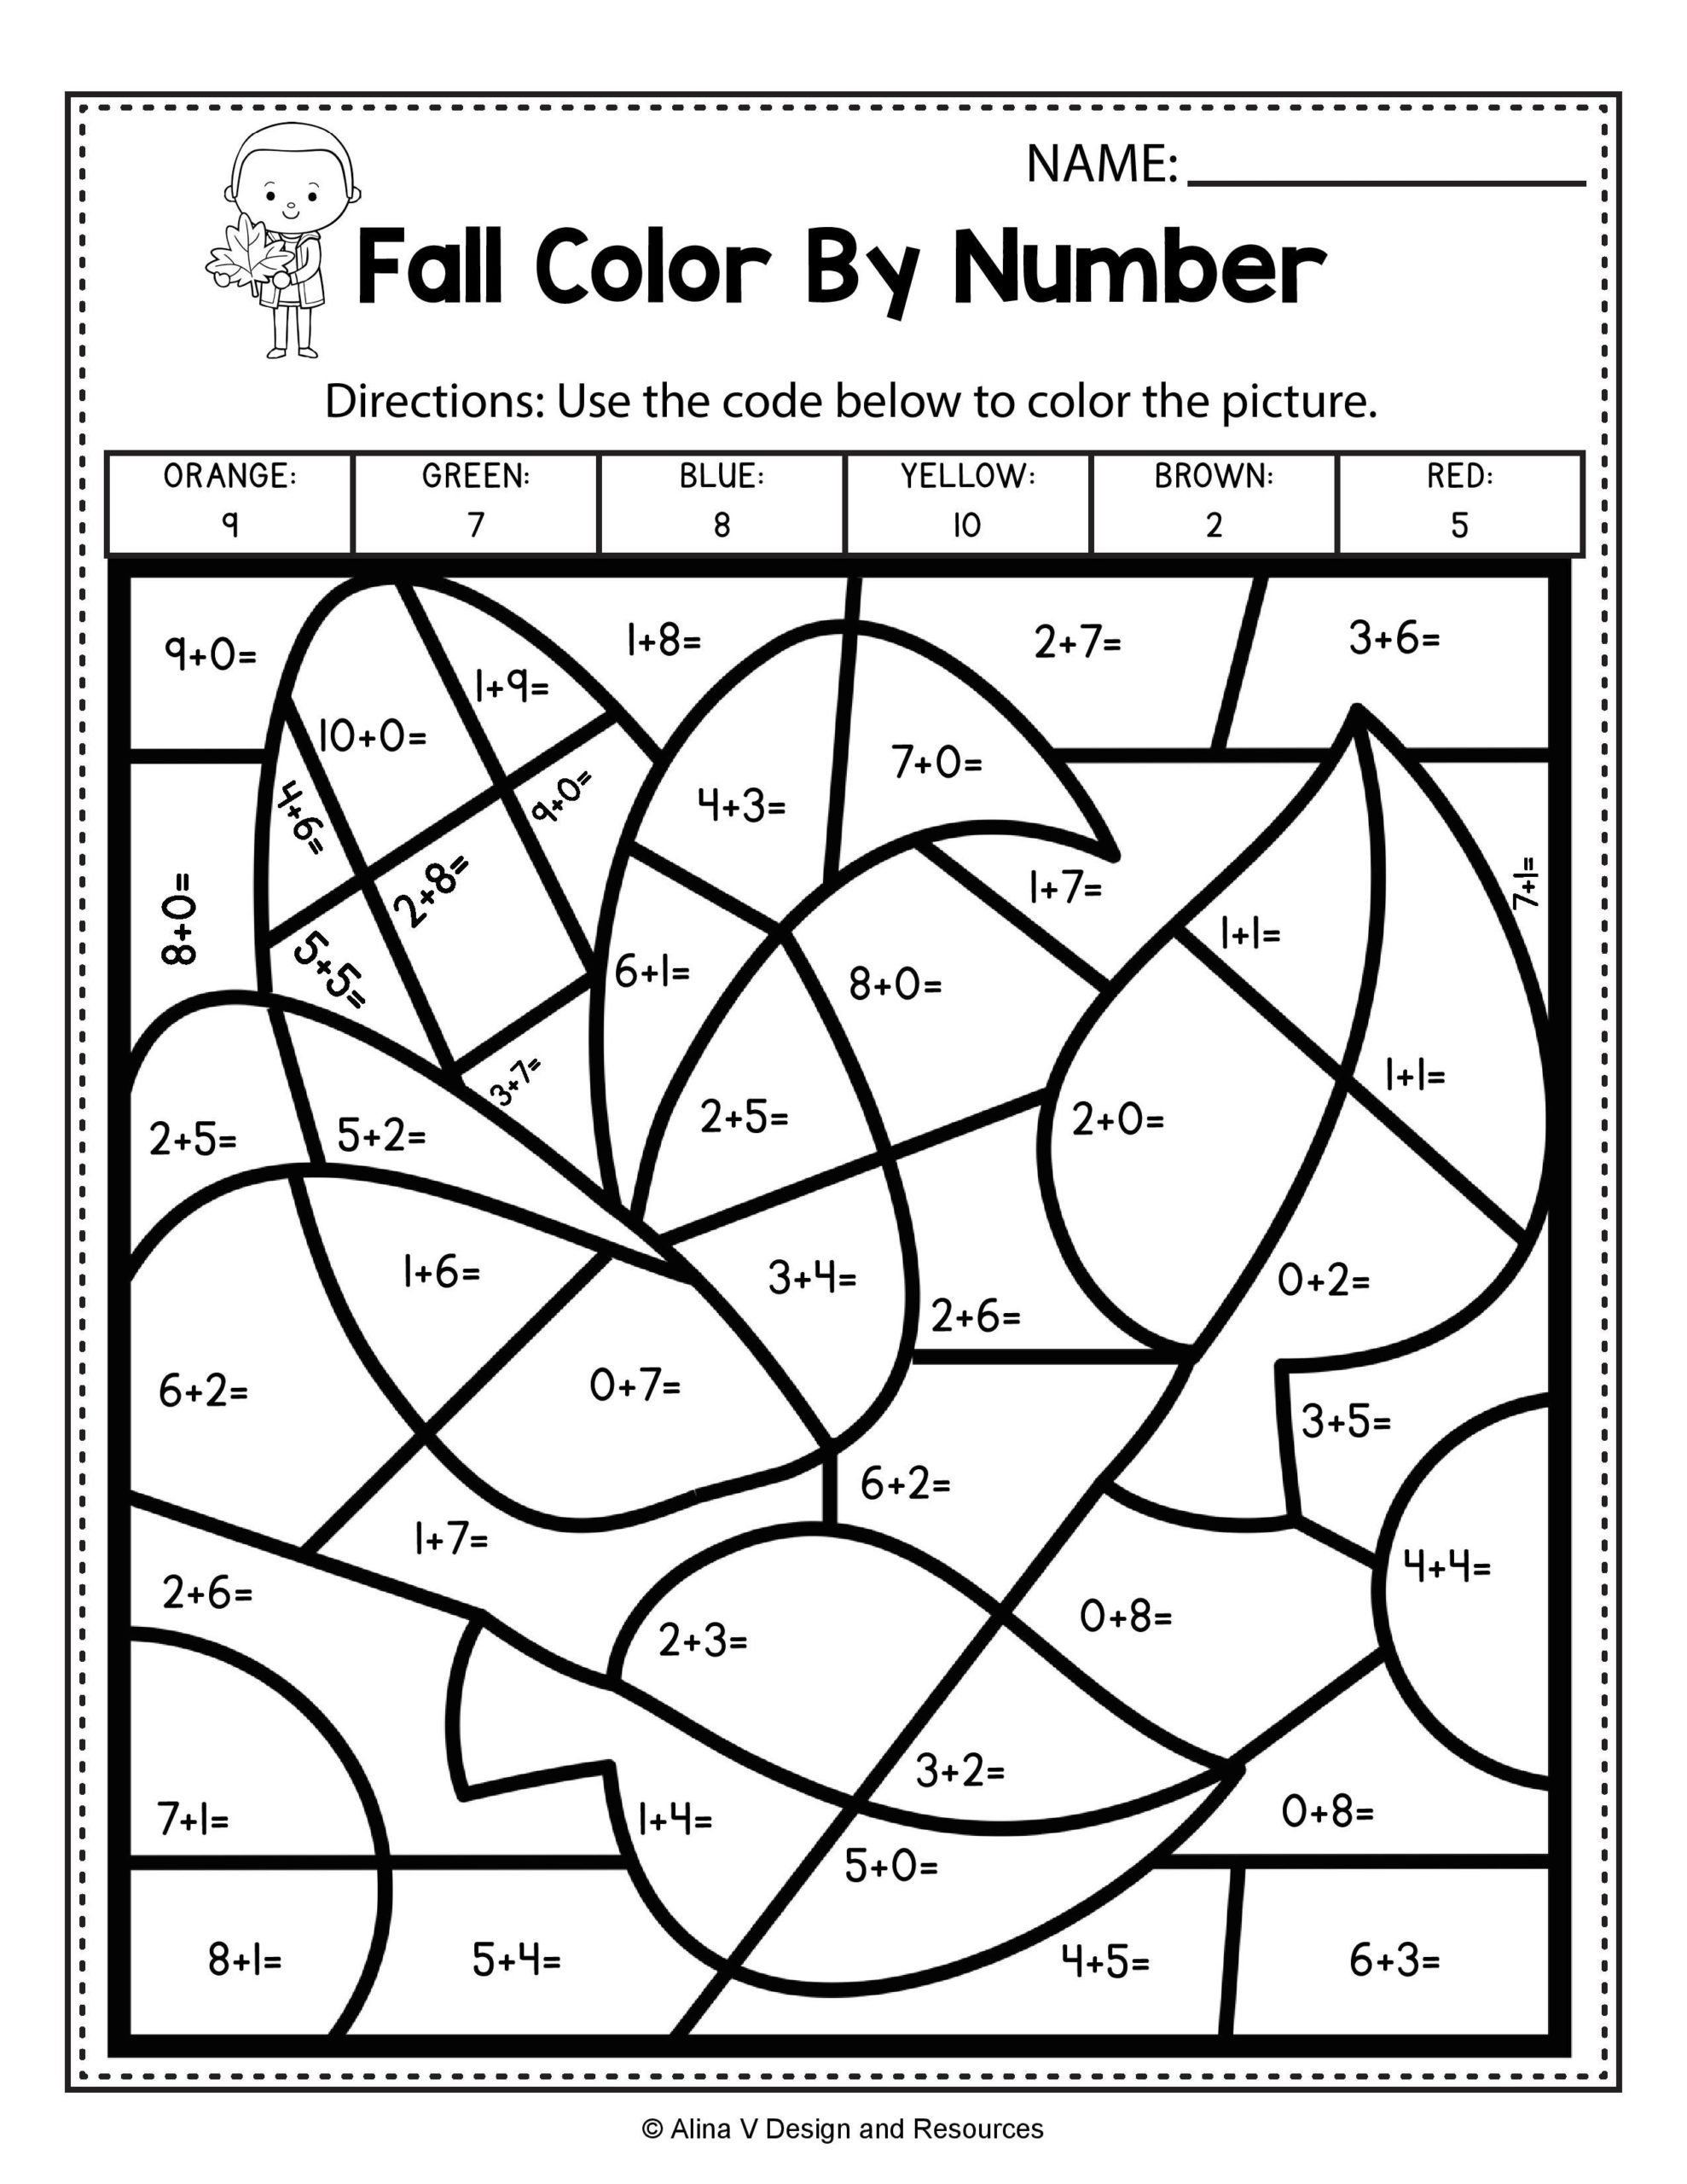 Addition Color by Number Worksheet Math Worksheet Simple Addition Color by Number Fall Math